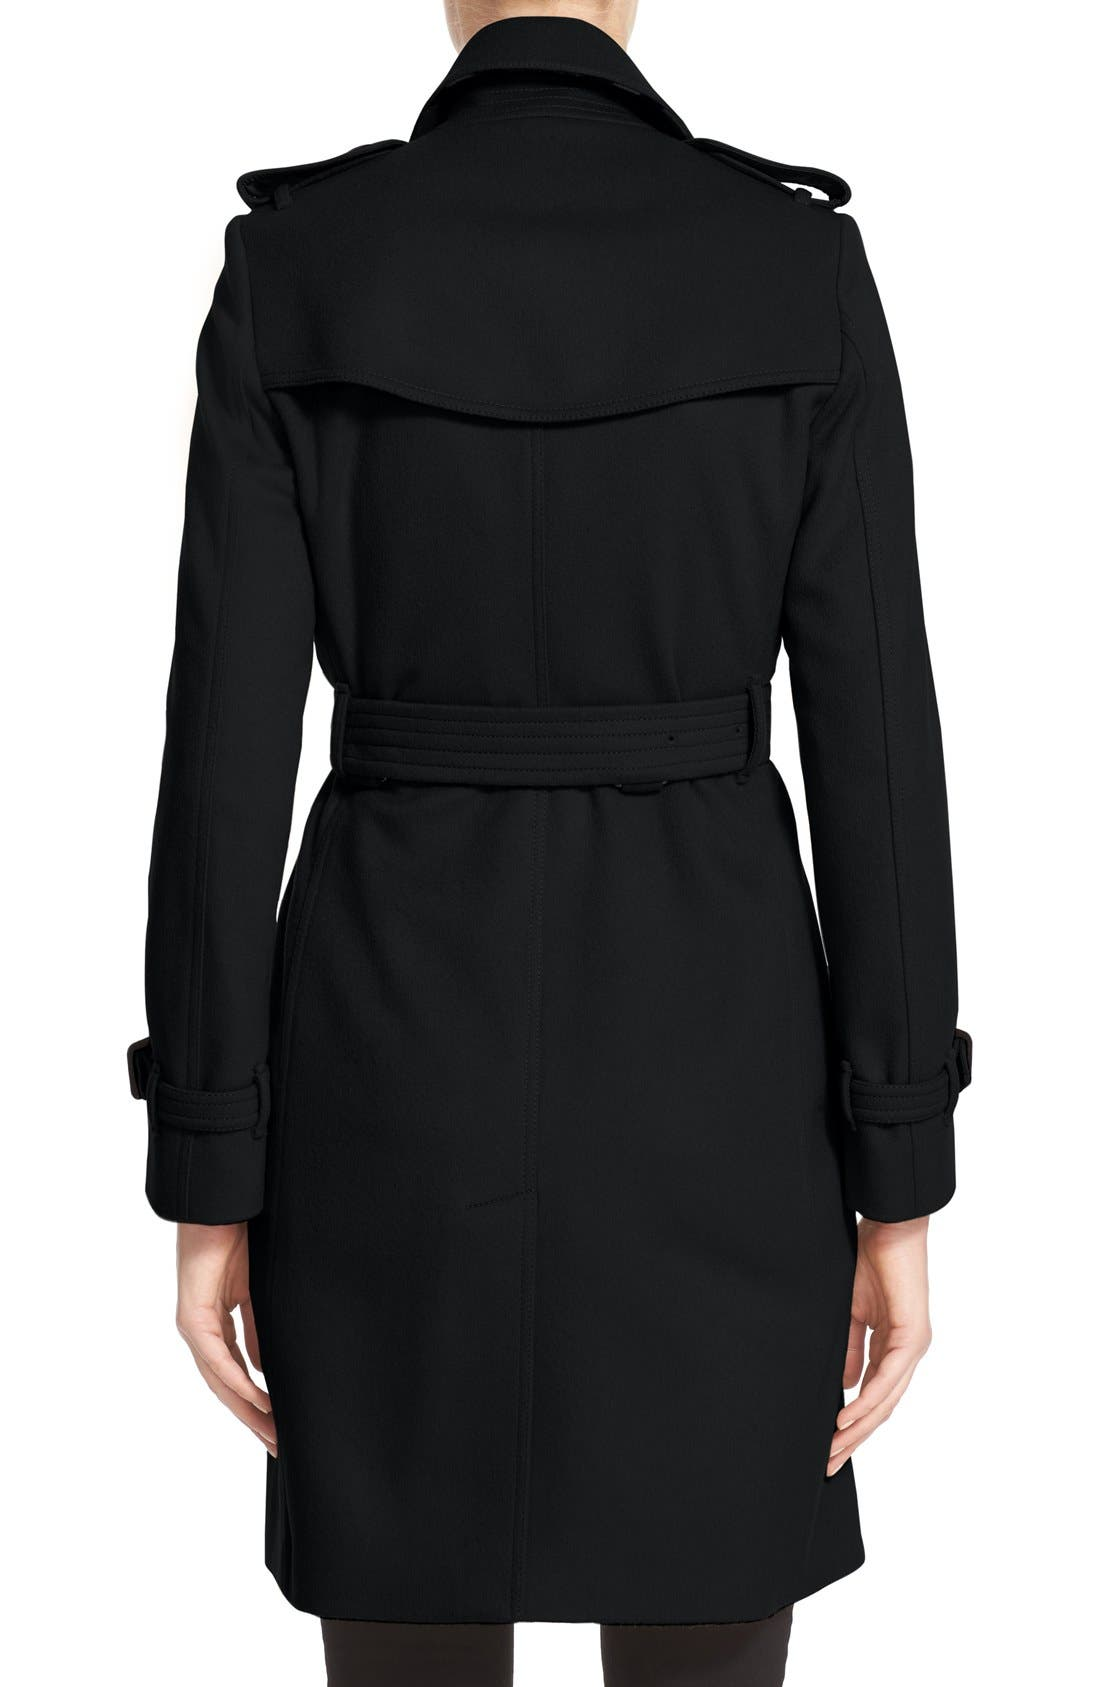 Kensington Double Breasted Wool & Cashmere Trench Coat,                             Alternate thumbnail 2, color,                             Black